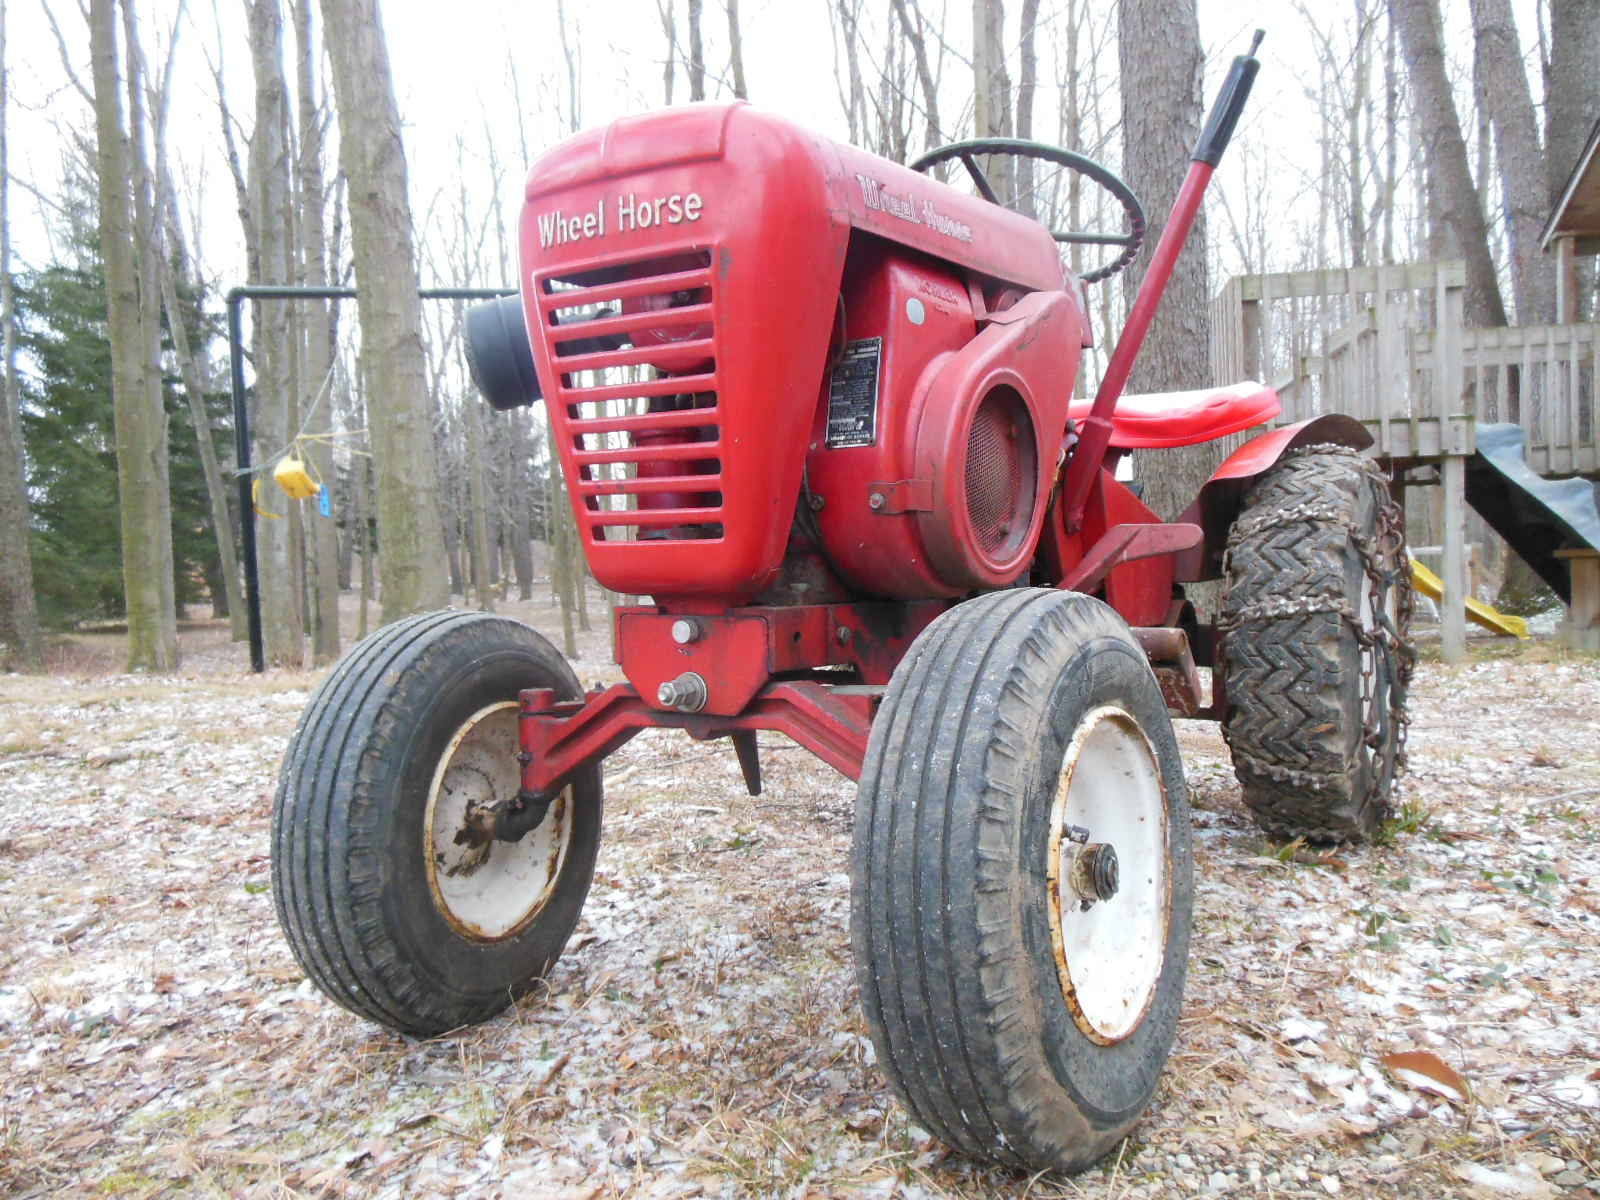 1964 Wheel Horse Tractor : June tractor of the month roundies including